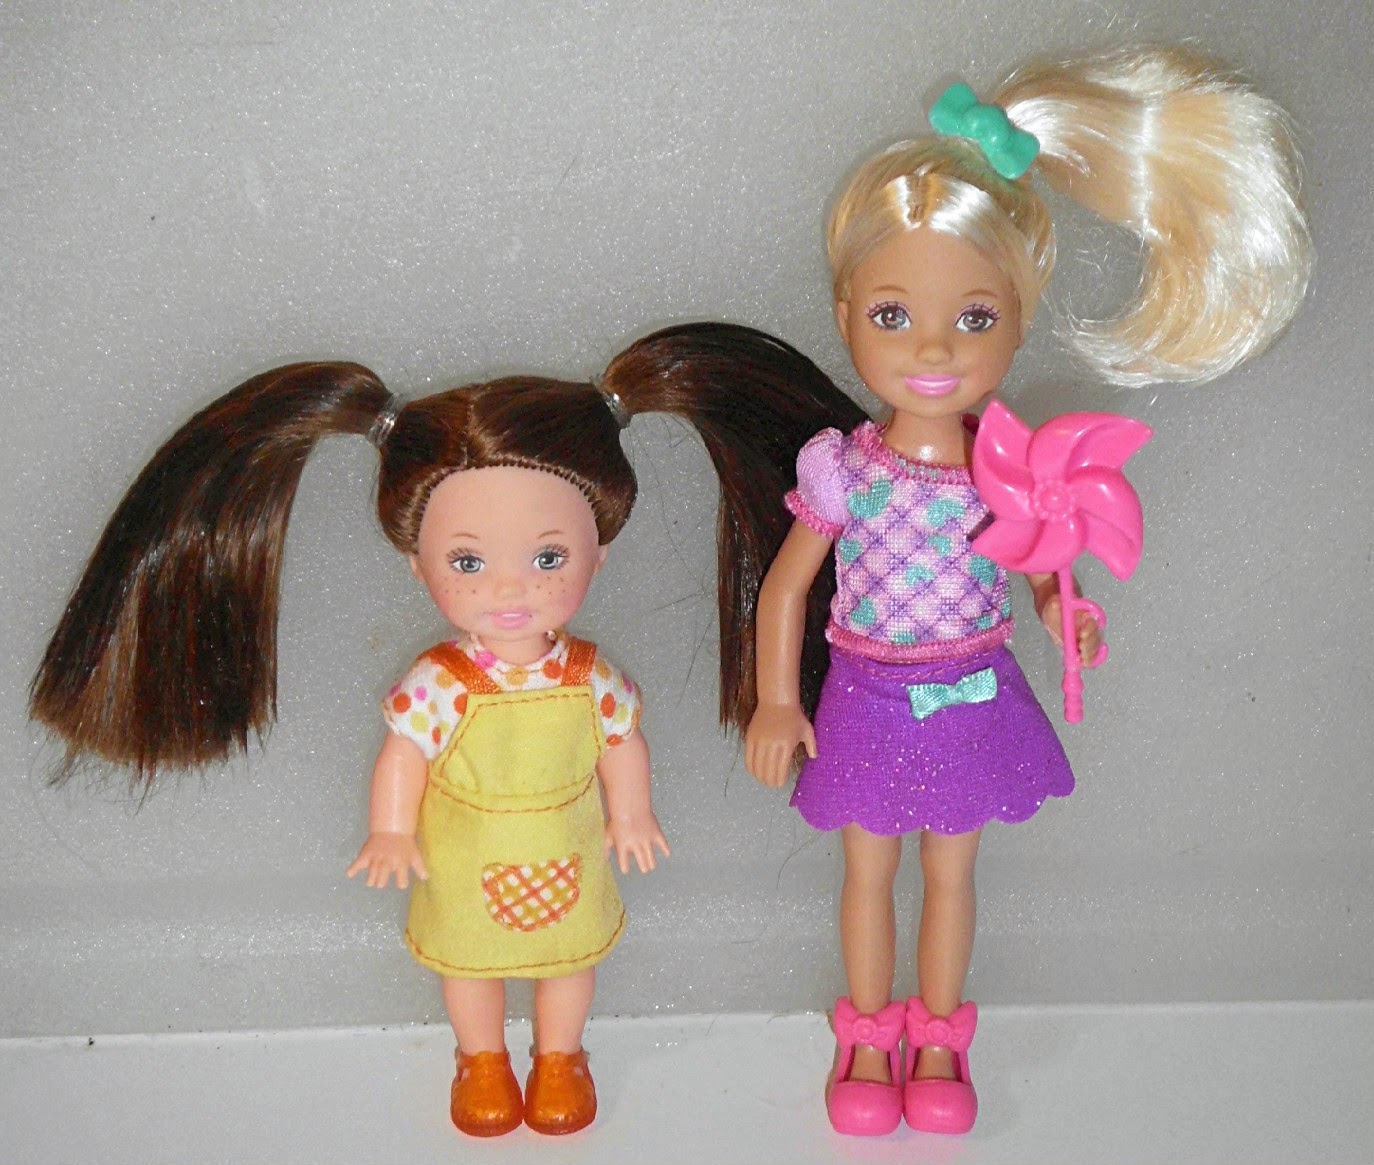 Confessions Of A Dolly Lover Barbie Siblings Then And Now